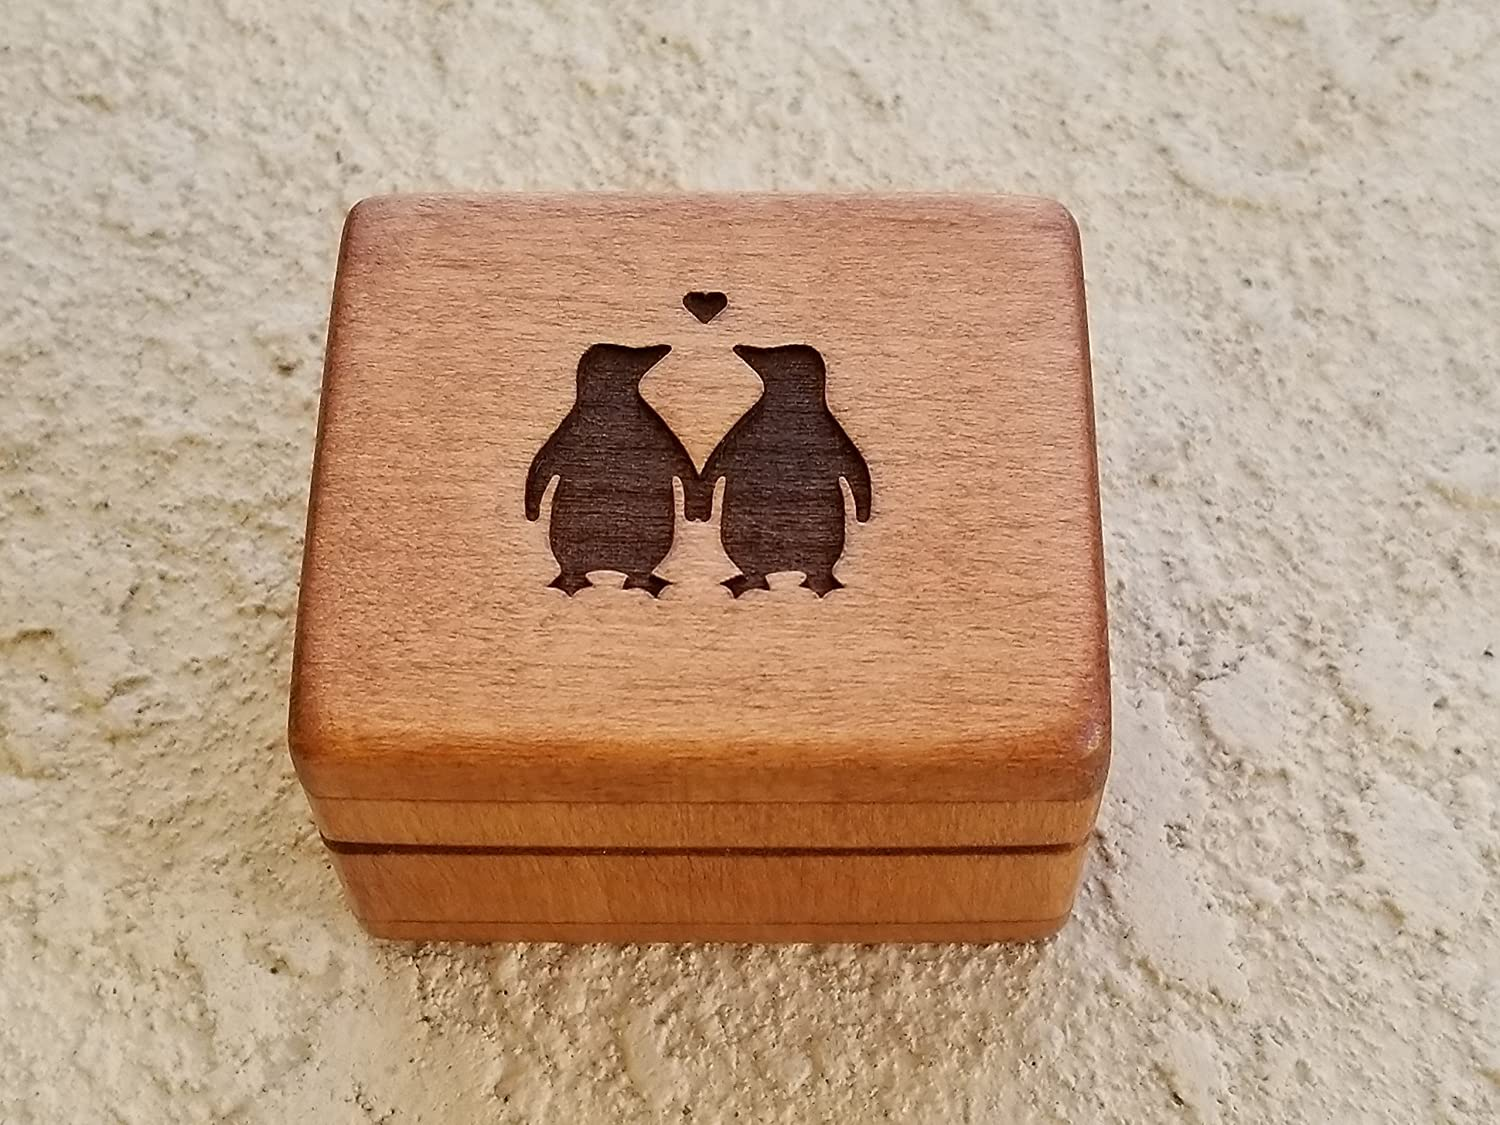 Custom engraved wooden ring box, love penguins, ring box, beach wedding, engagement ring box handmade by Simplycoolgifts, Valentine's day gift Valentine' s day gift